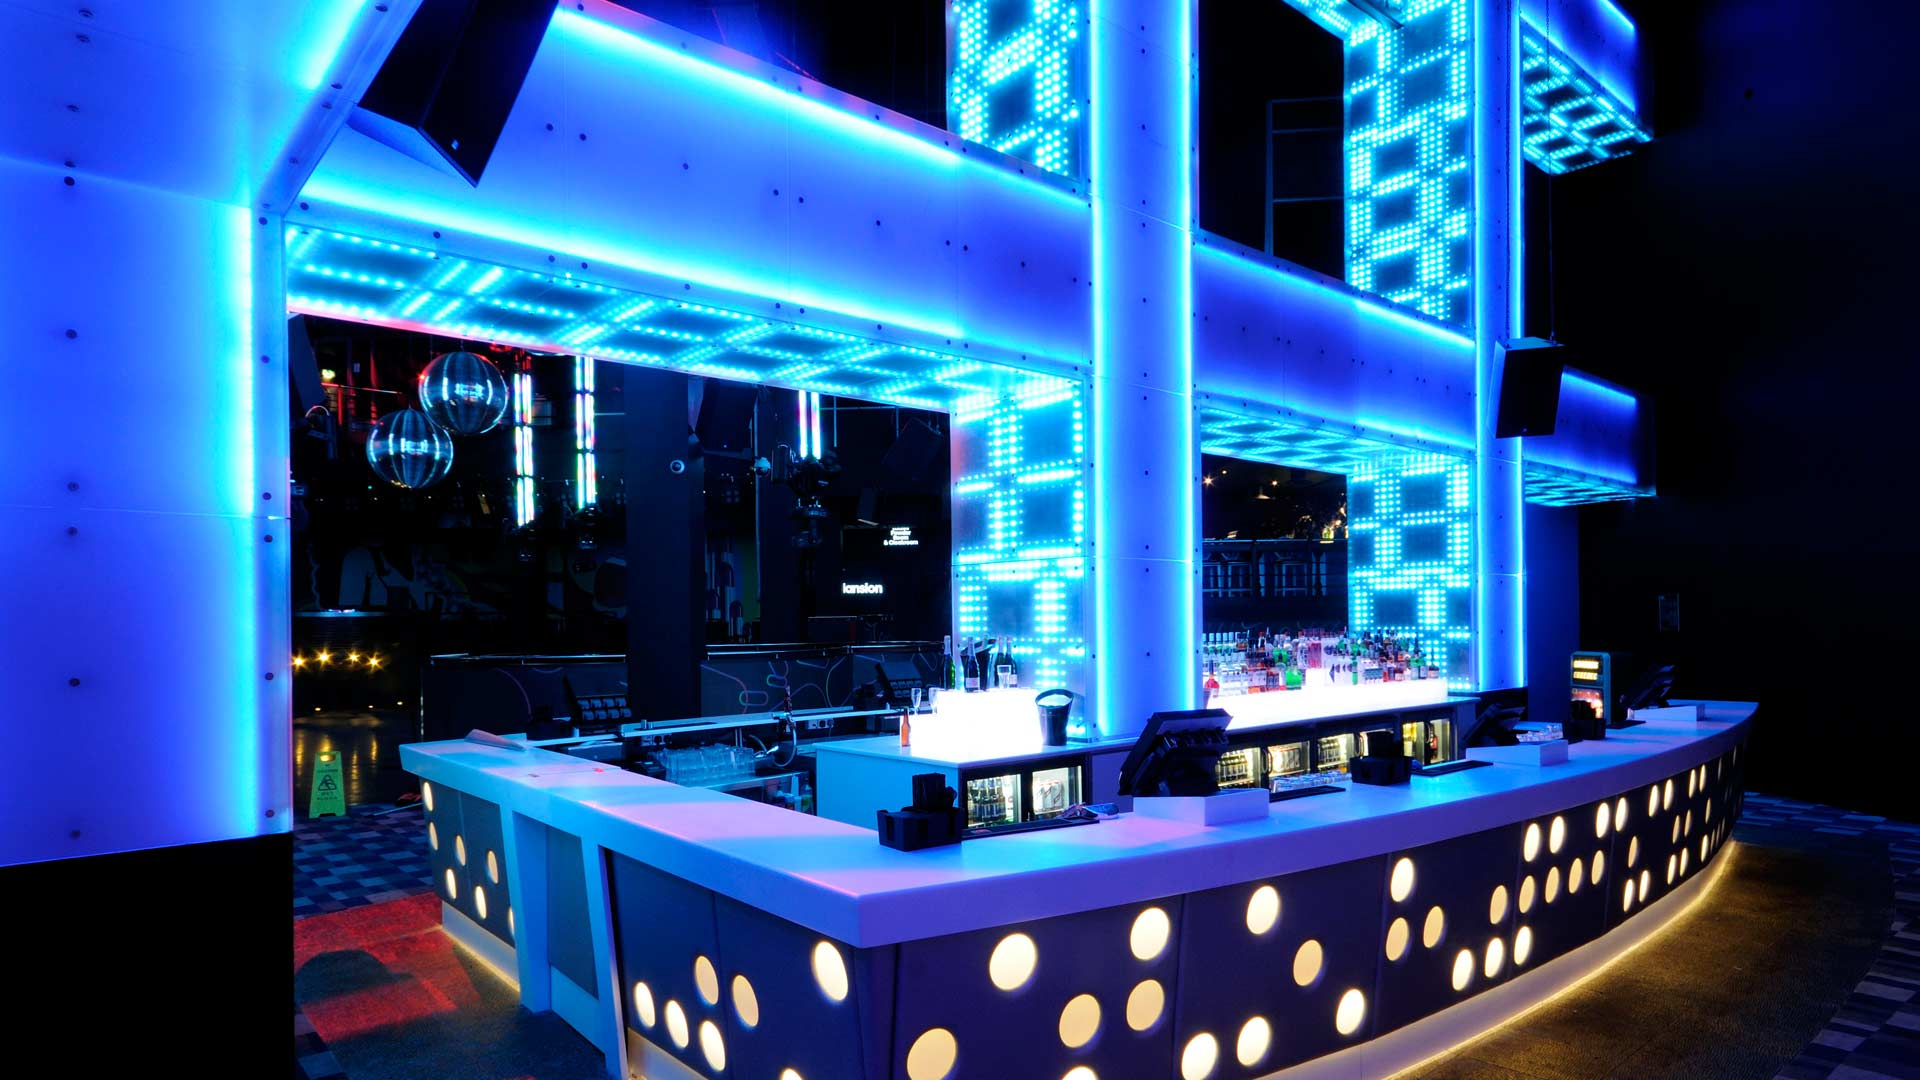 nightclub designers the best in night club design - Nightclub Design Ideas